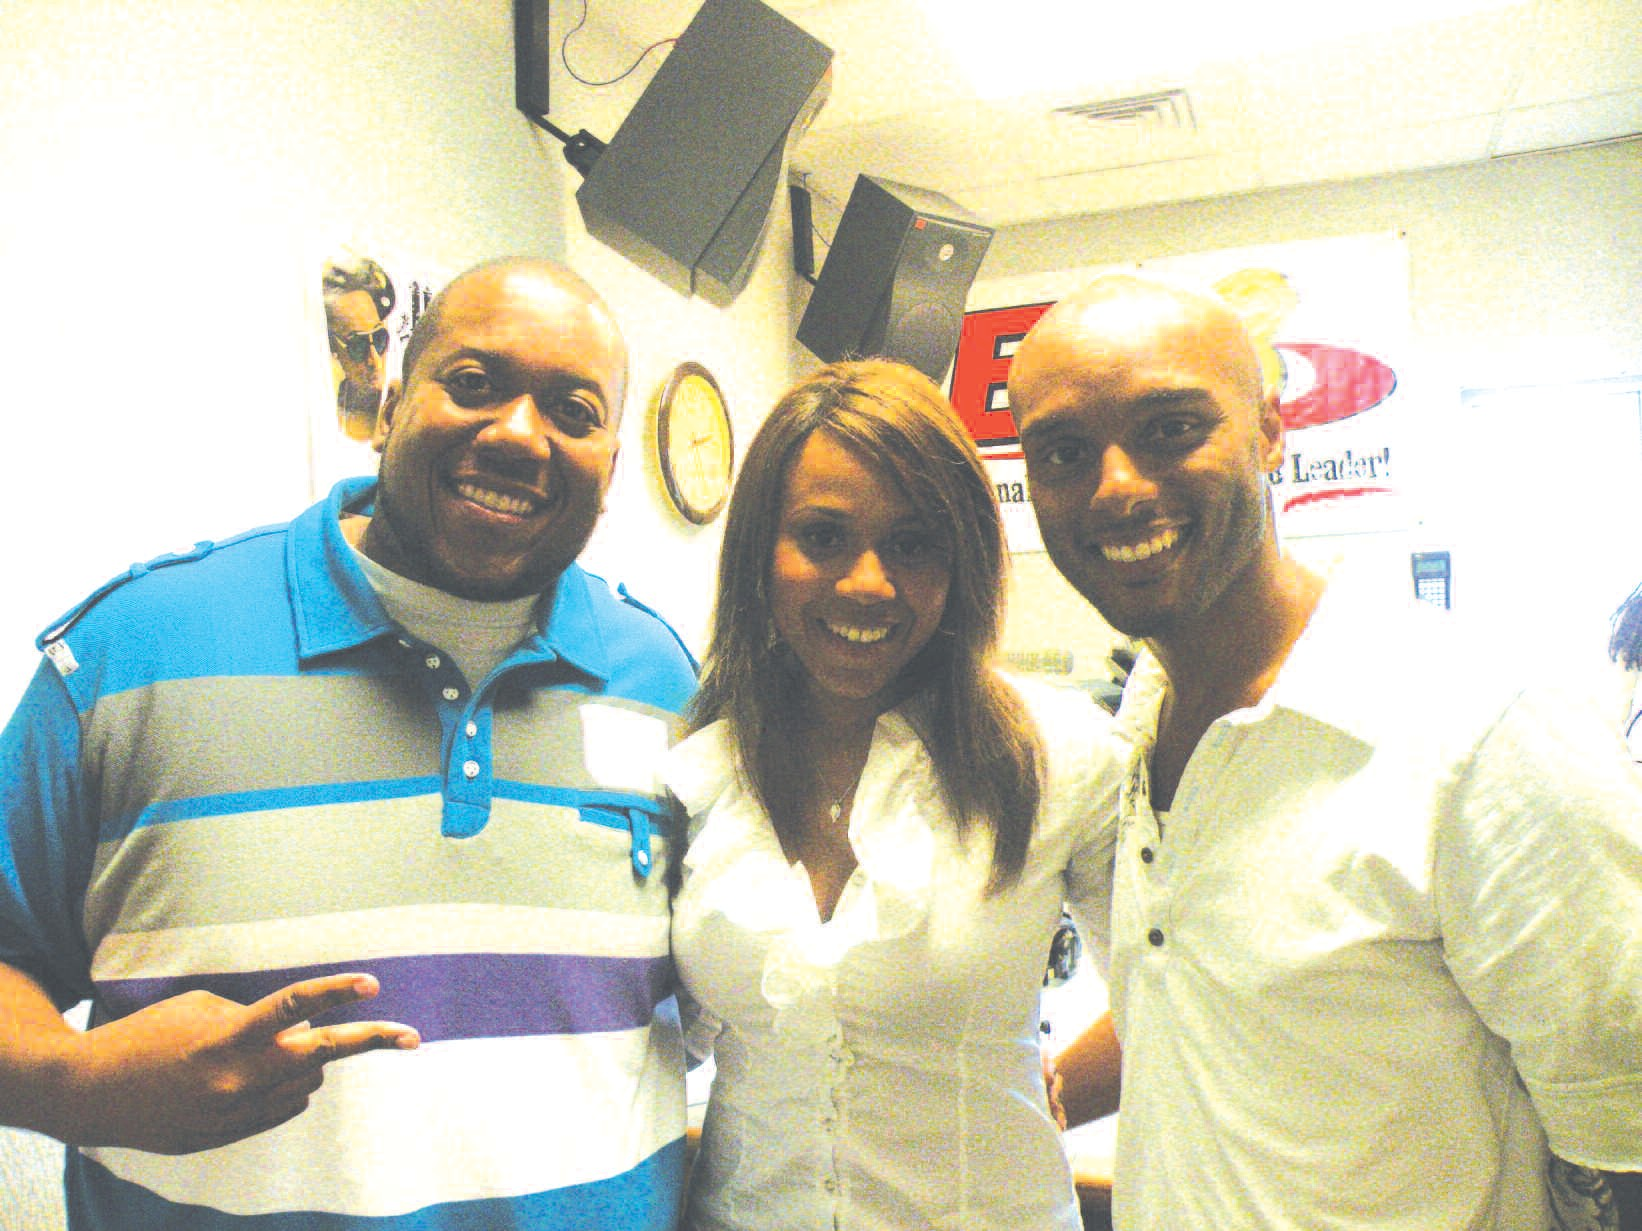 Kenya Cabine, (l) of E-93 FM is pictured with Deborah Cox and Kenny Lattimore